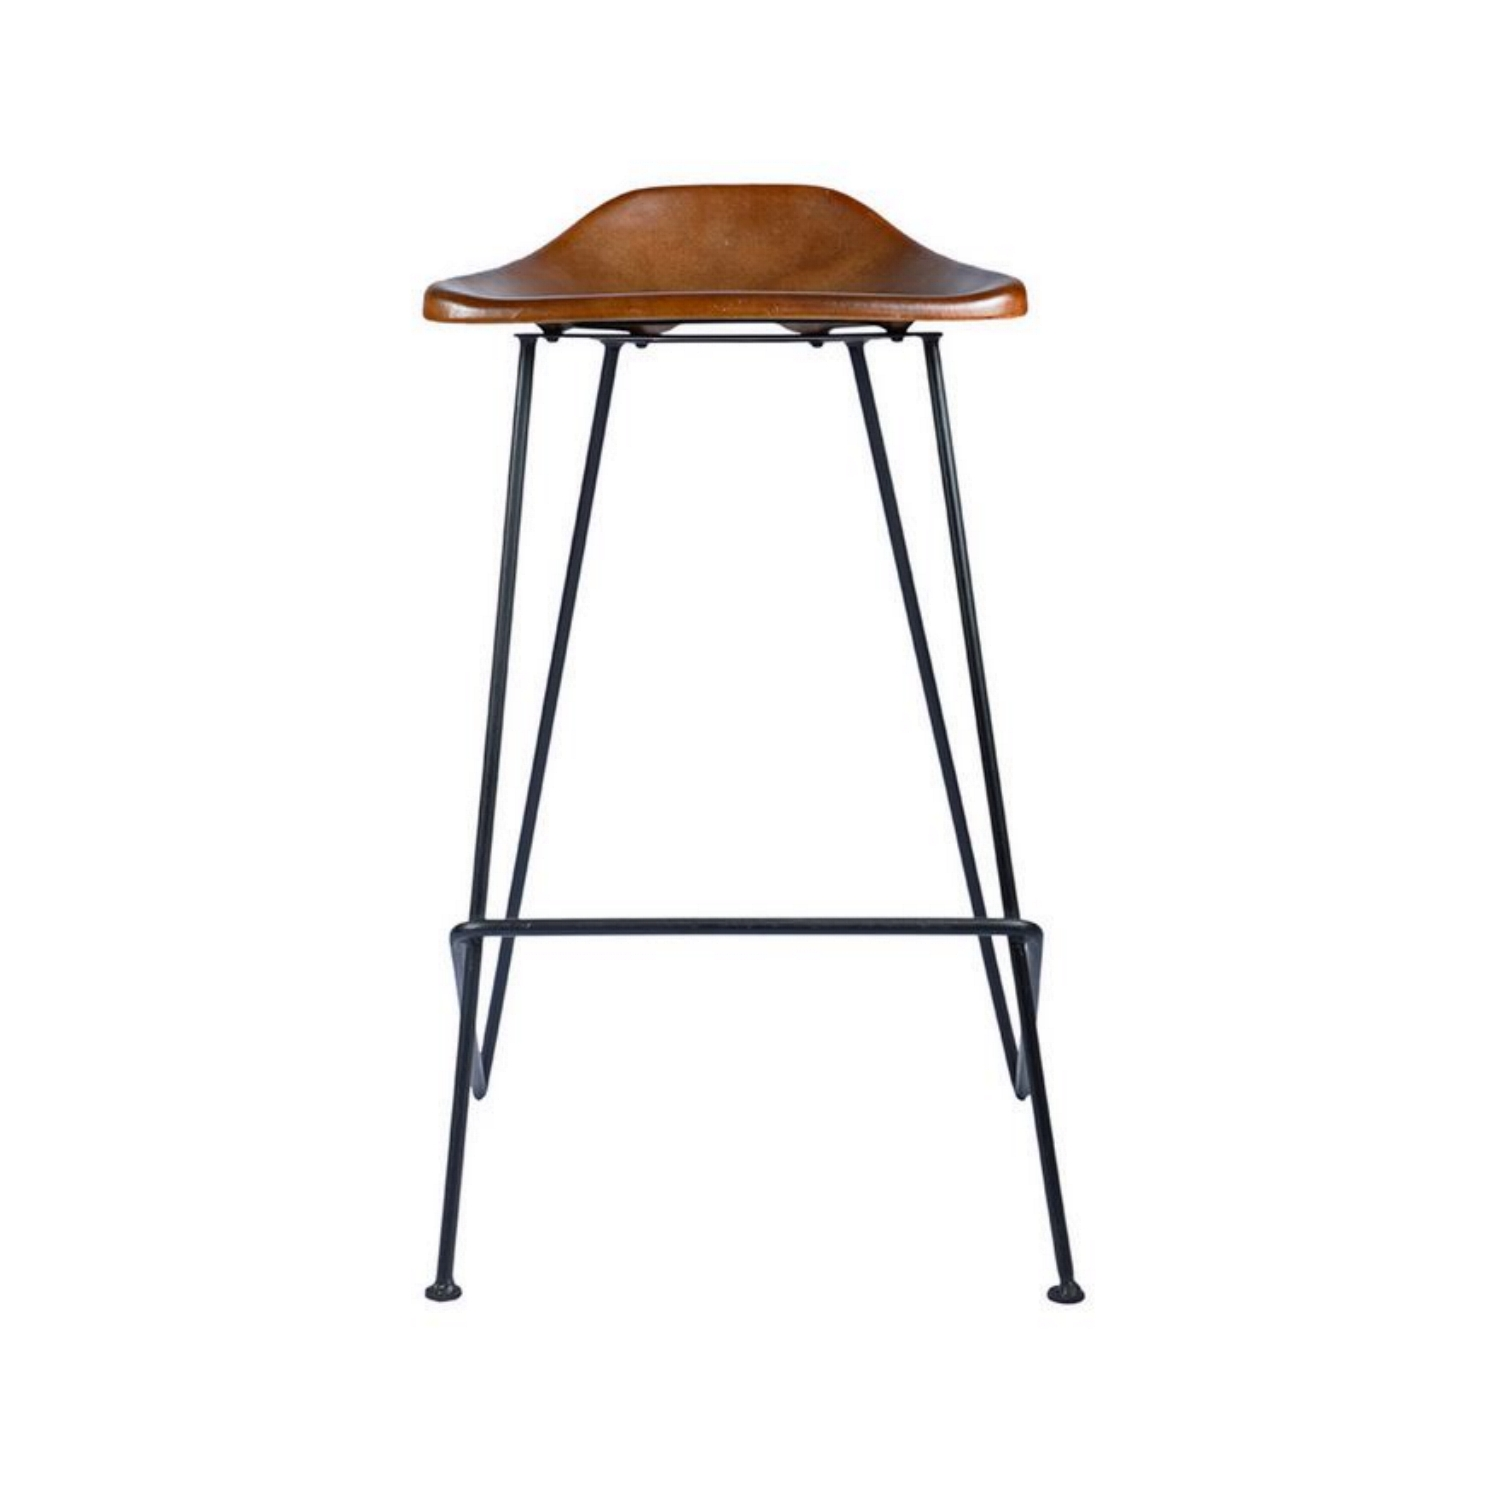 Super Tack Shop Kitchen Counter Height Bar Stool Black Metal And Leather Sold In Pairs Creativecarmelina Interior Chair Design Creativecarmelinacom